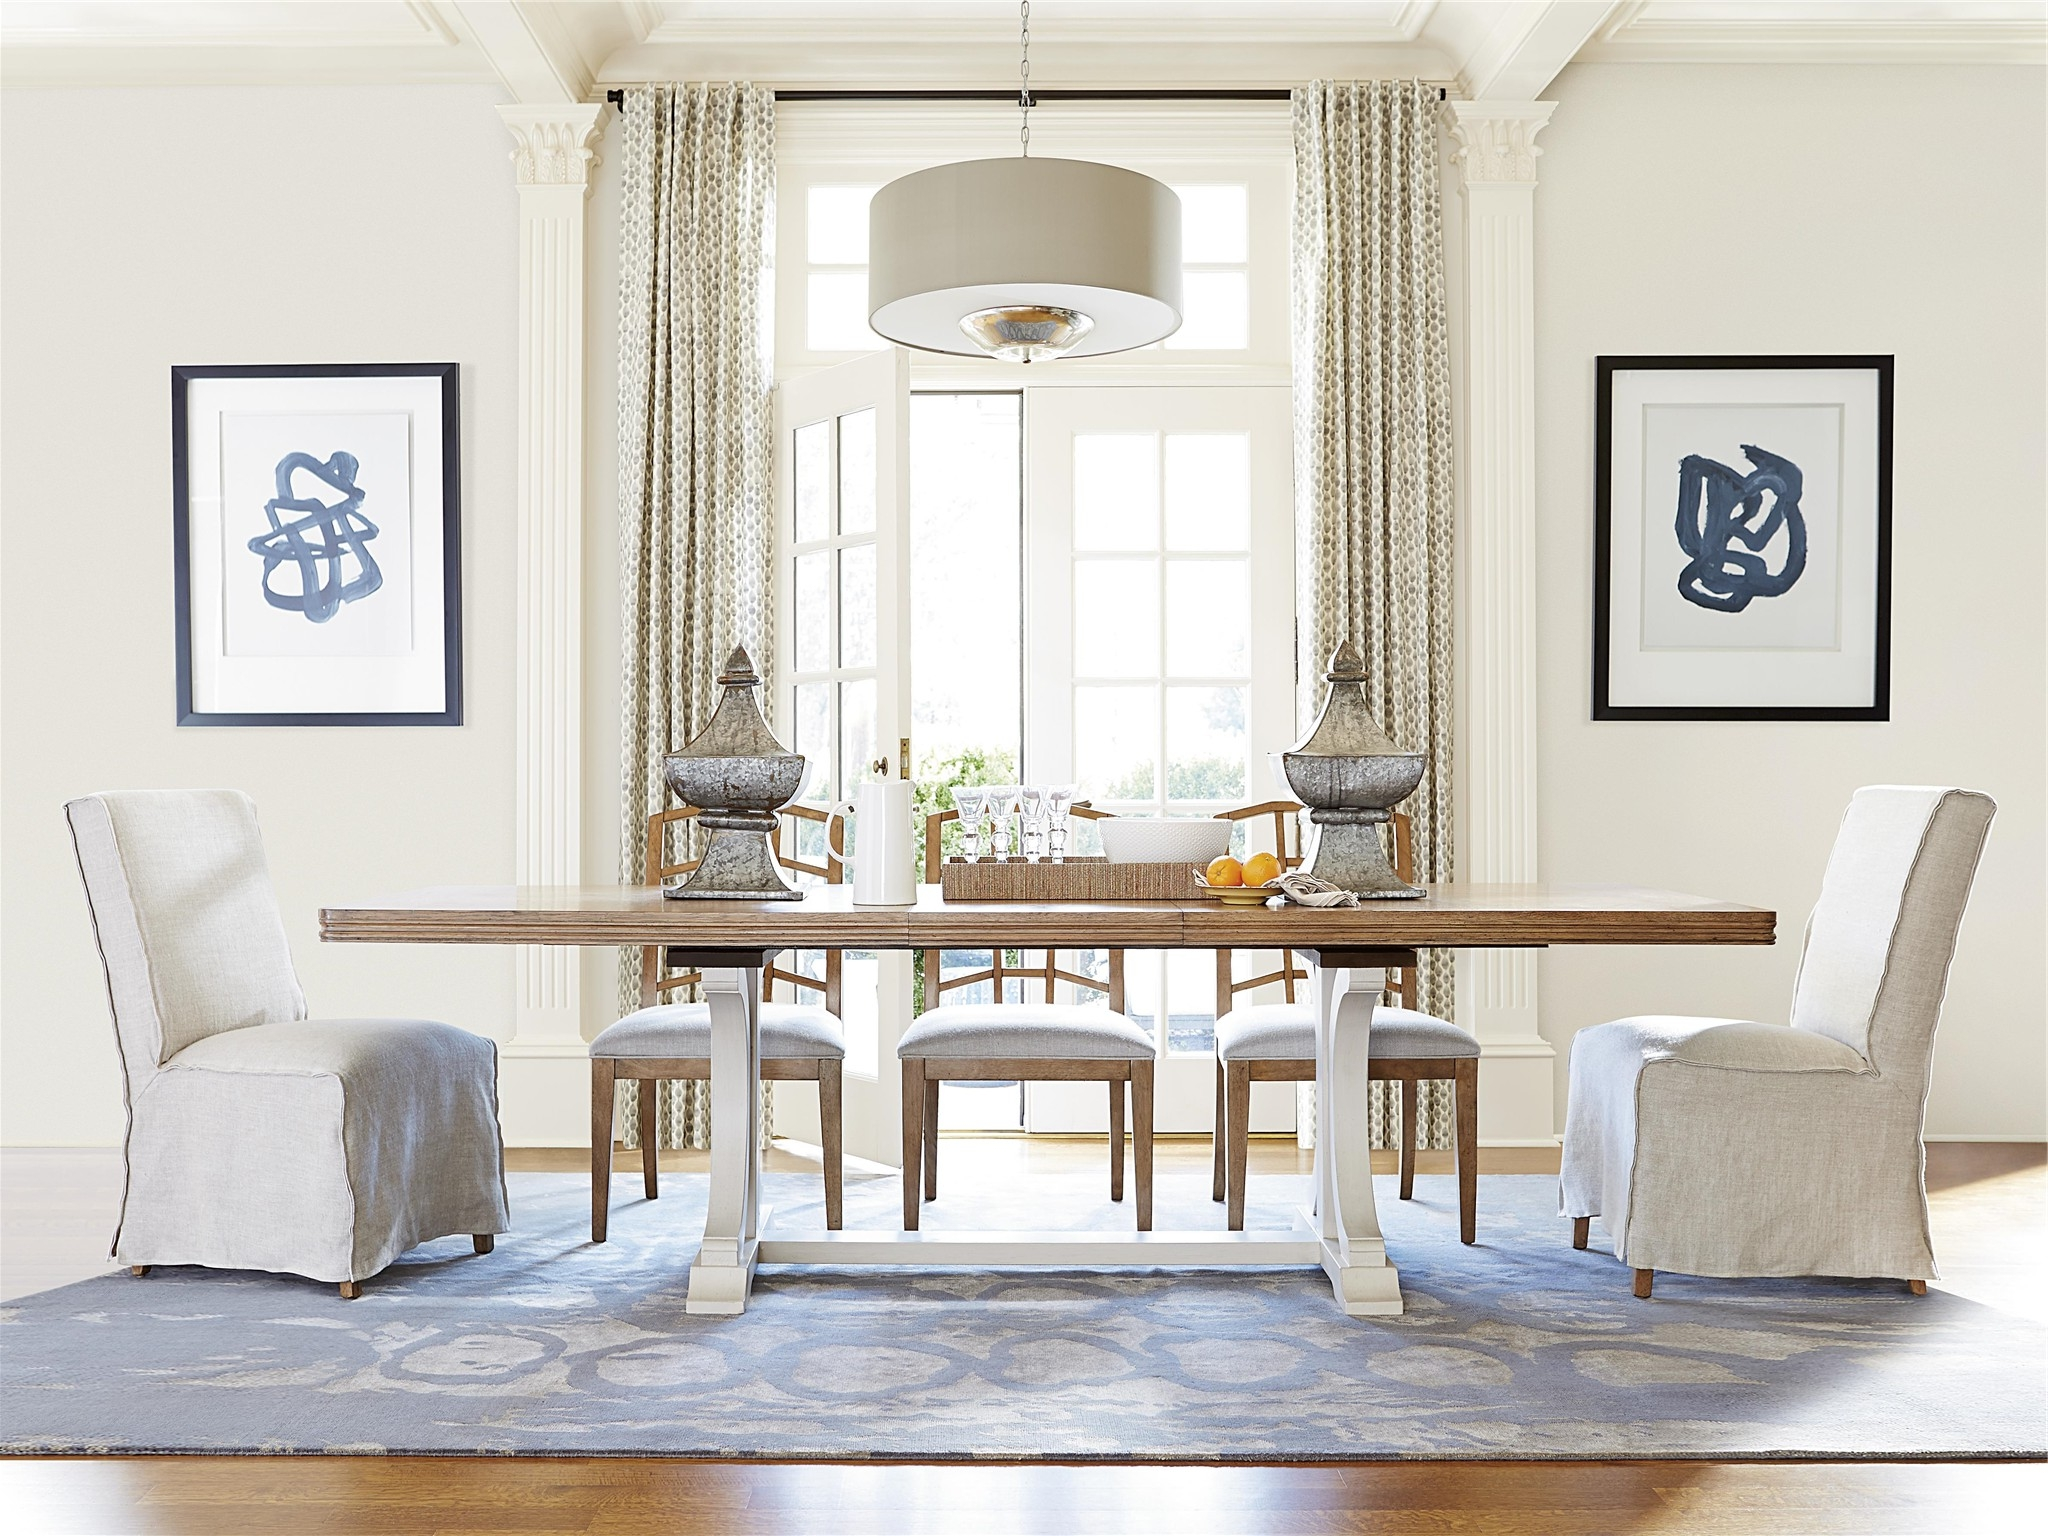 Most Recent Bahamas Dining Table Lovely Universal Furniture Moderne Muse Dining With Universal Dining Tables (View 11 of 25)